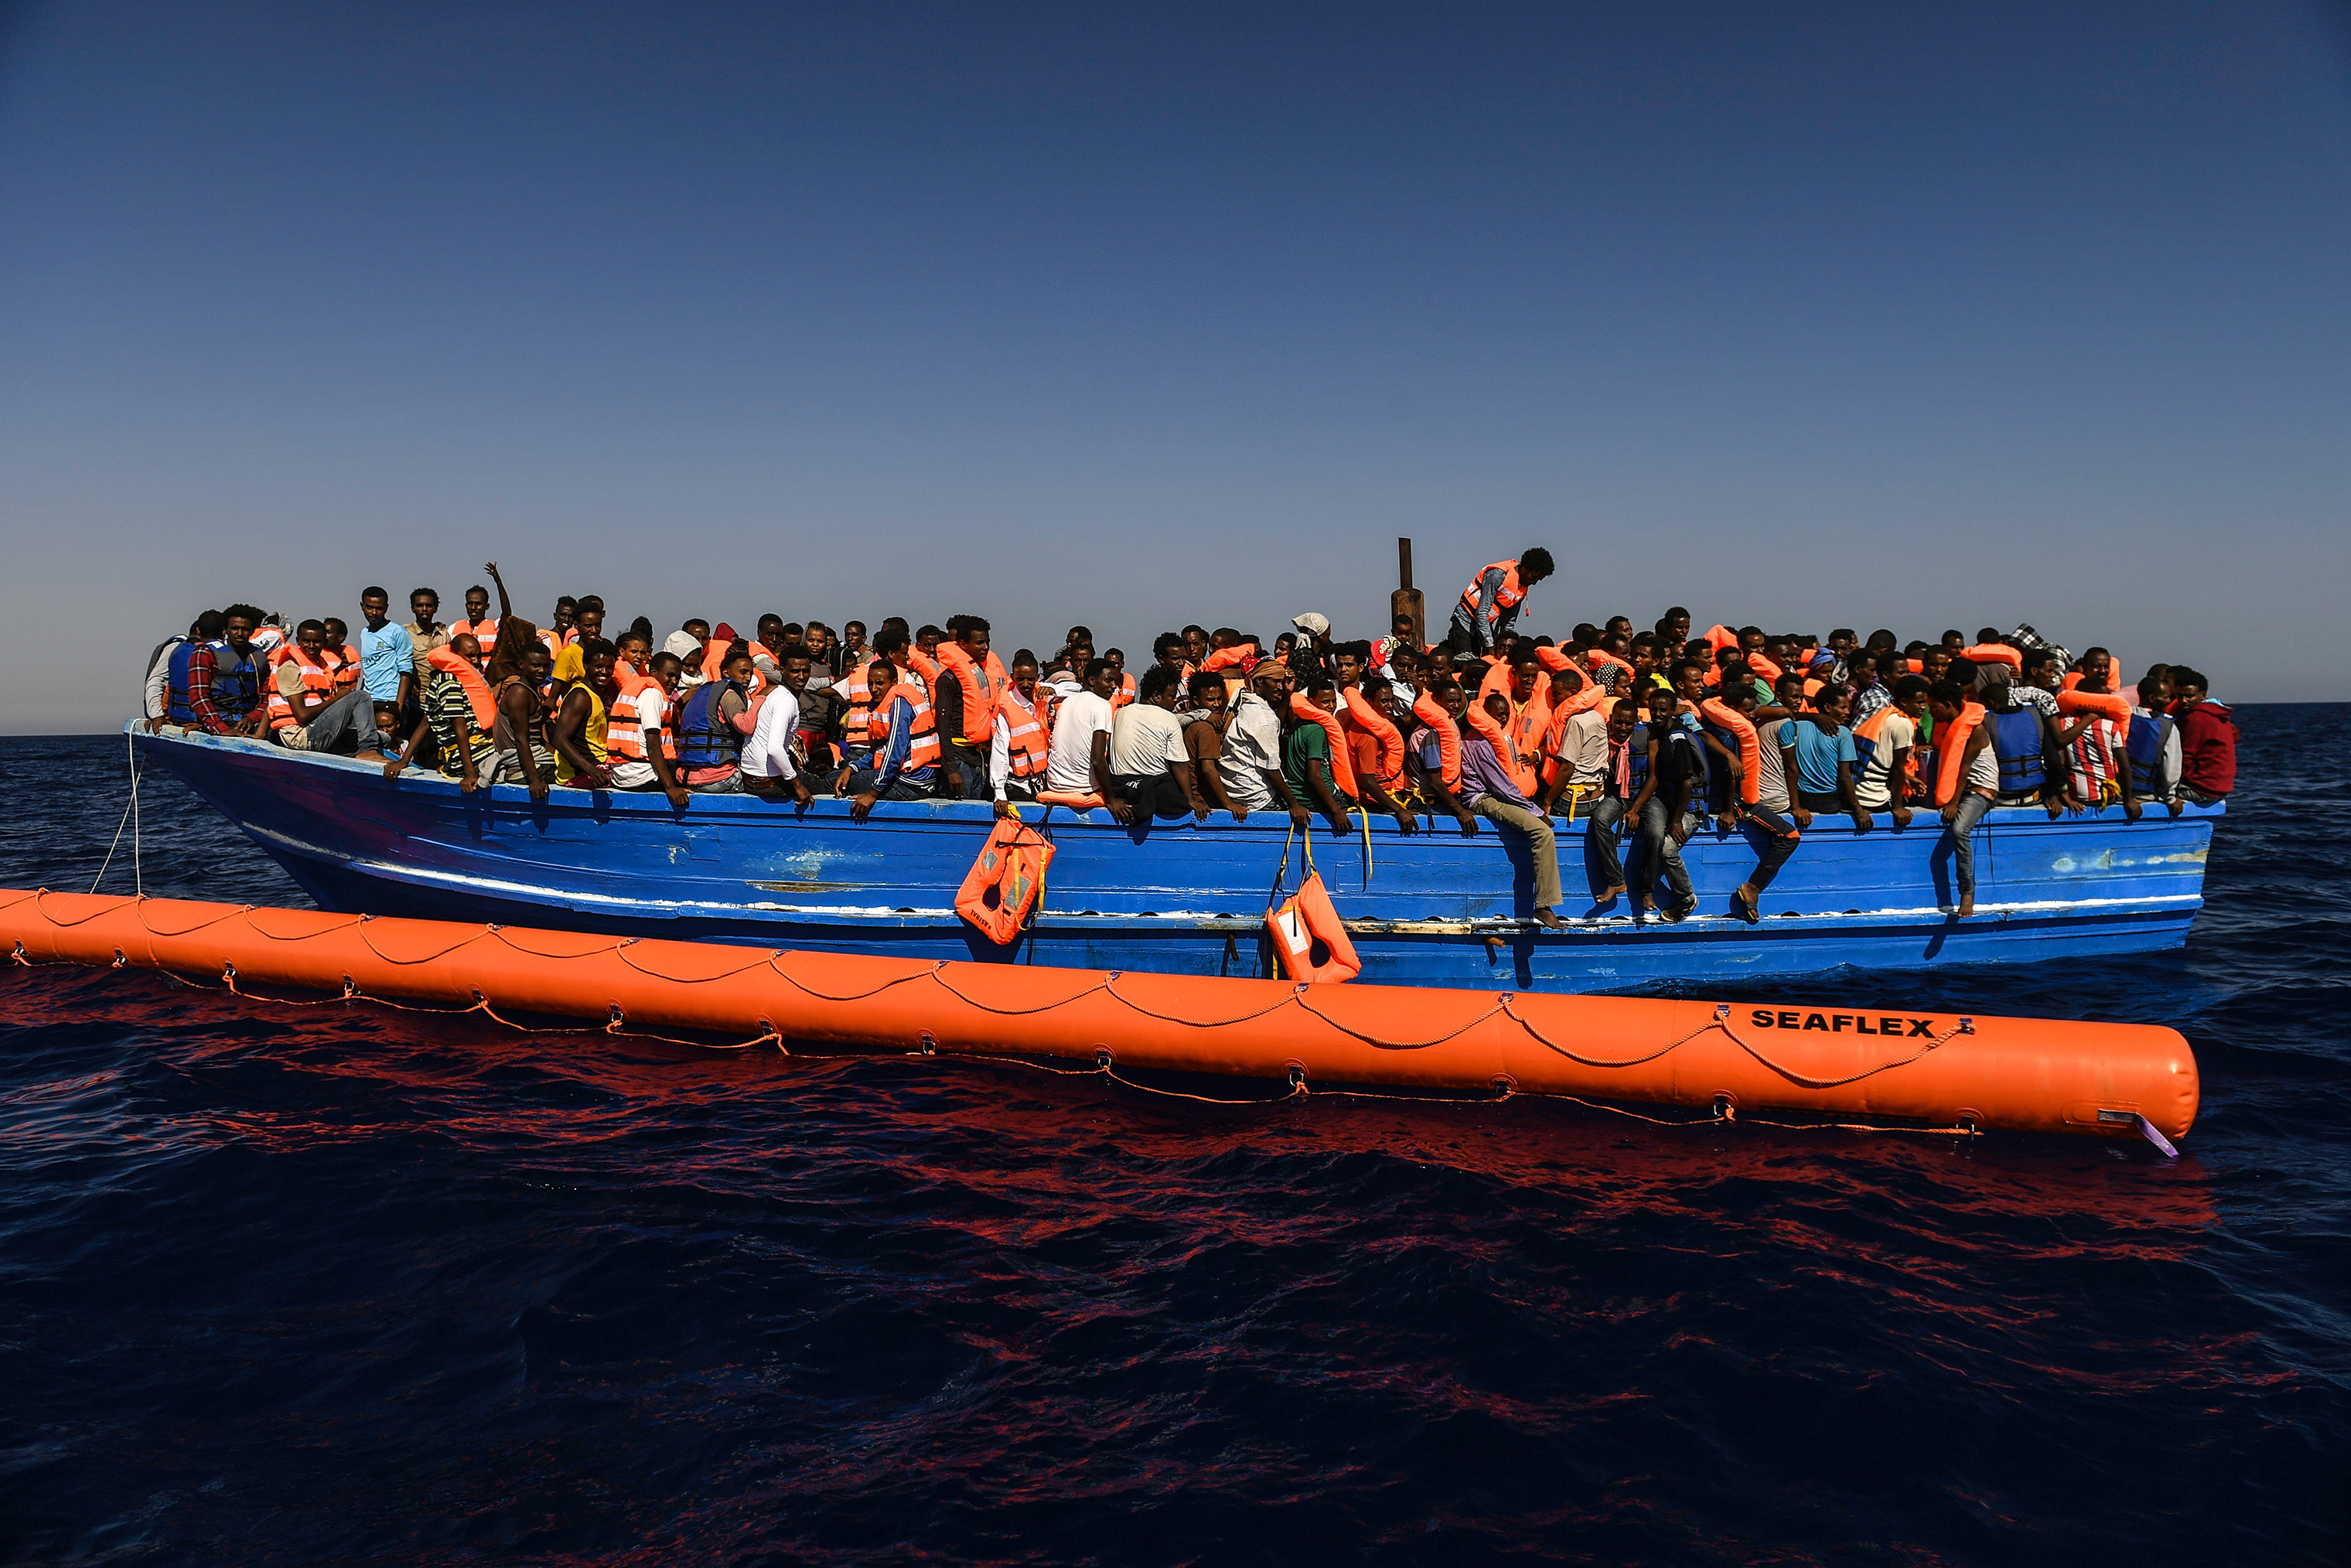 Search and rescue staff and medics, jointly run by SOS Mediterranee and Doctors Without Borders, rescue migrants in the Mediterranean Sea, about 25 miles off the coast of Libya, Aug. 20, 2016.